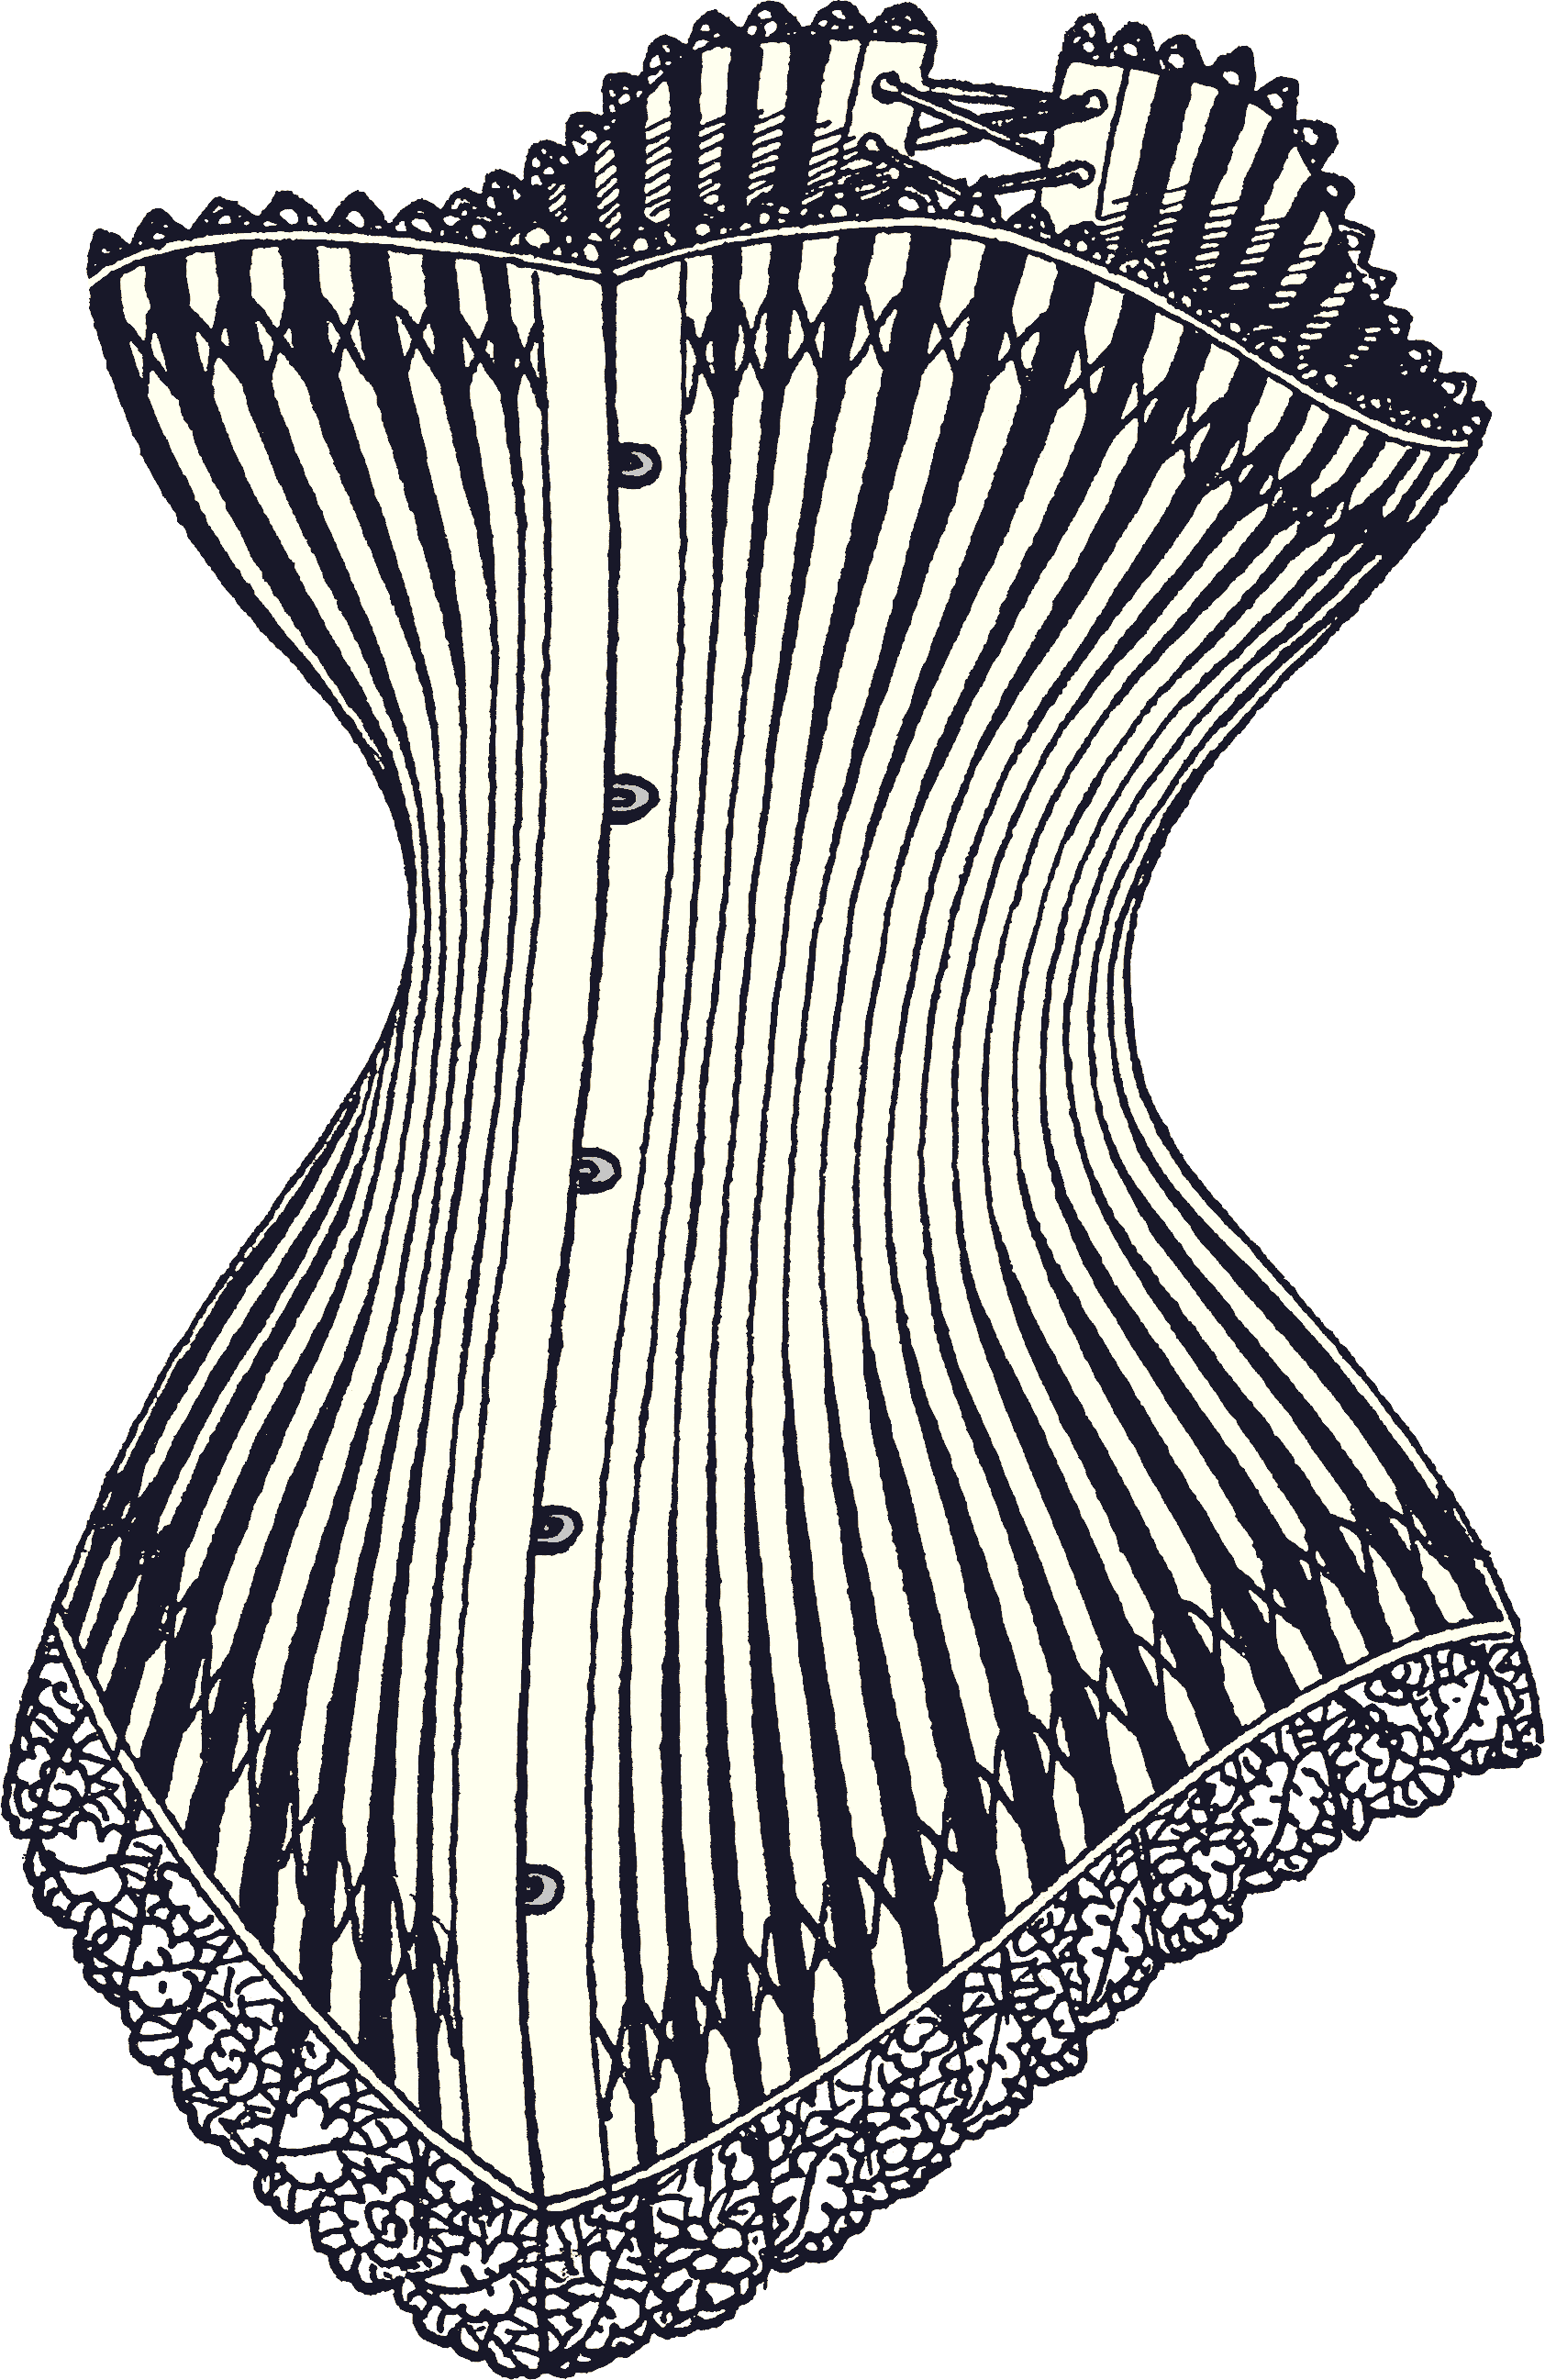 http://upload.wikimedia.org/wikipedia/commons/0/01/Corset1878taille46_300gram.png